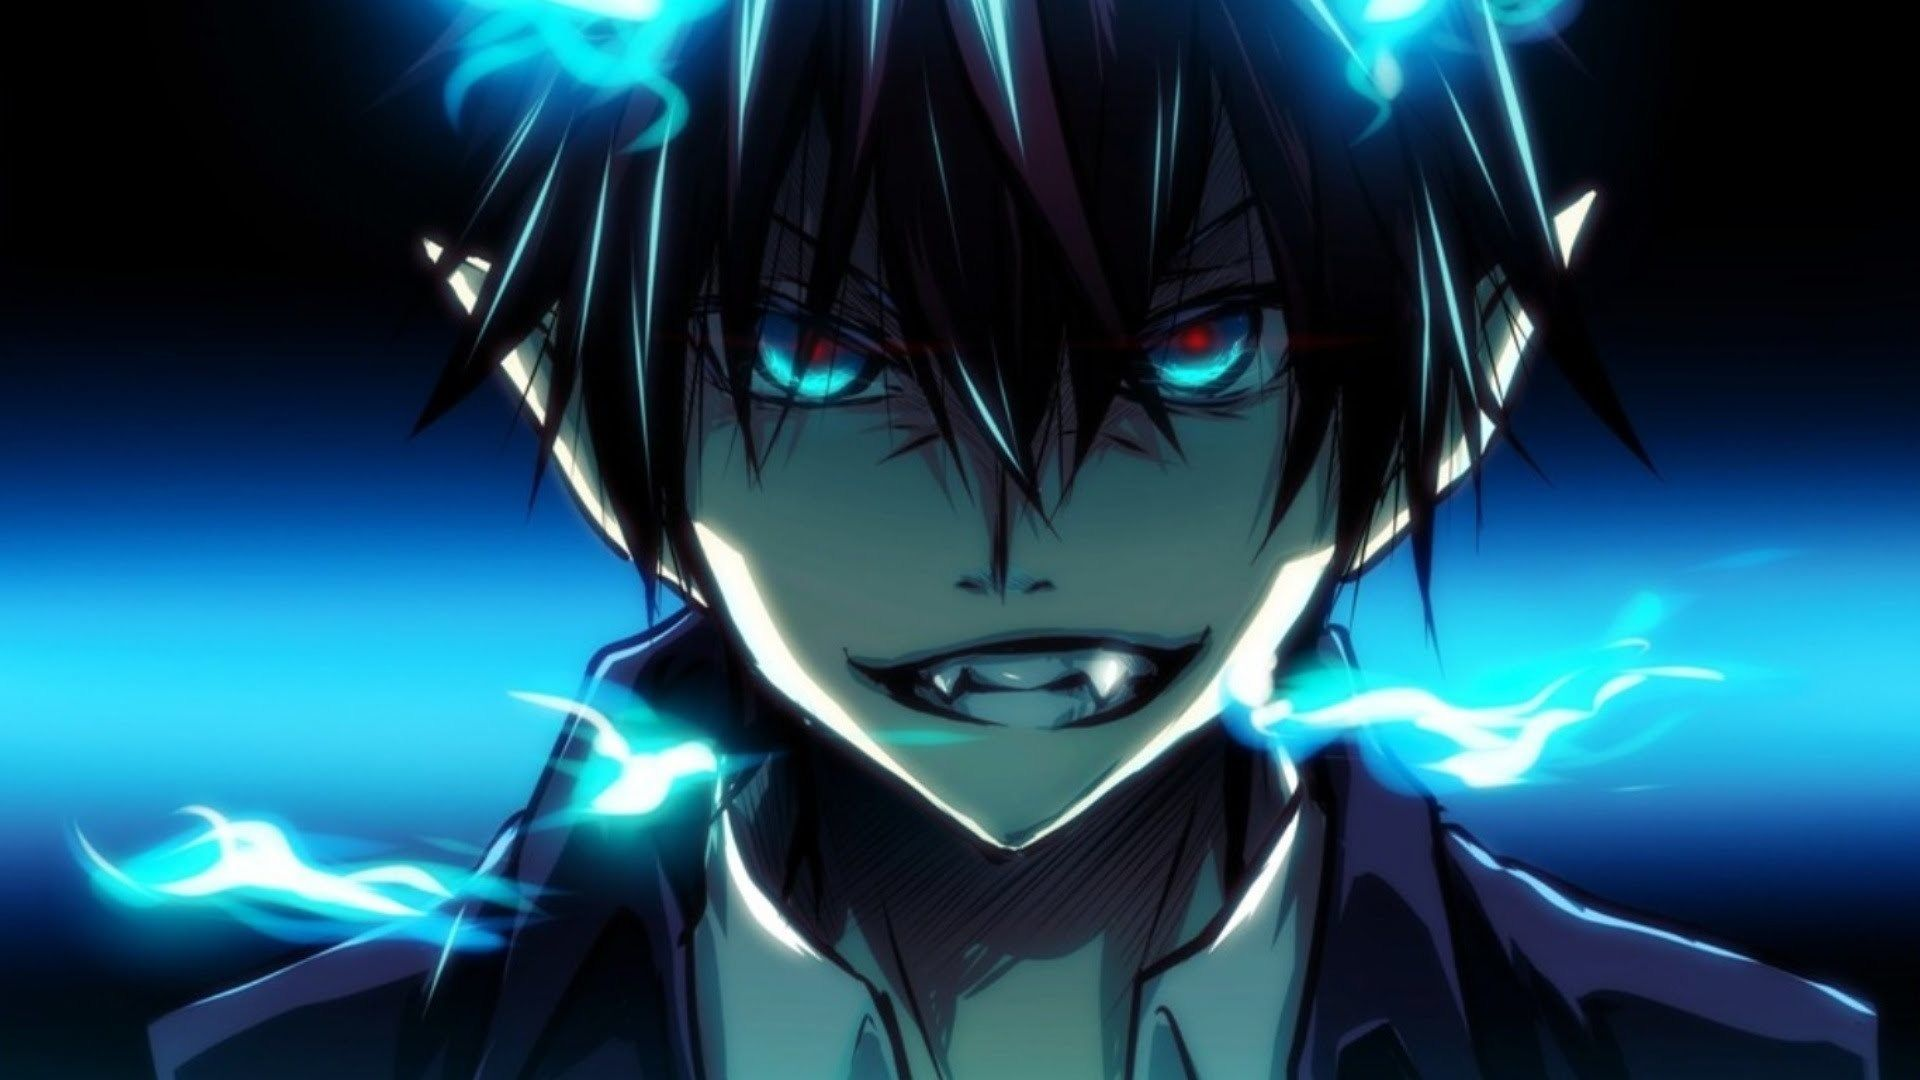 Pin By Servamp Kuro On Anime Boy Clothes Blue Exorcist Anime Blue Exorcist Rin Blue Exorcist